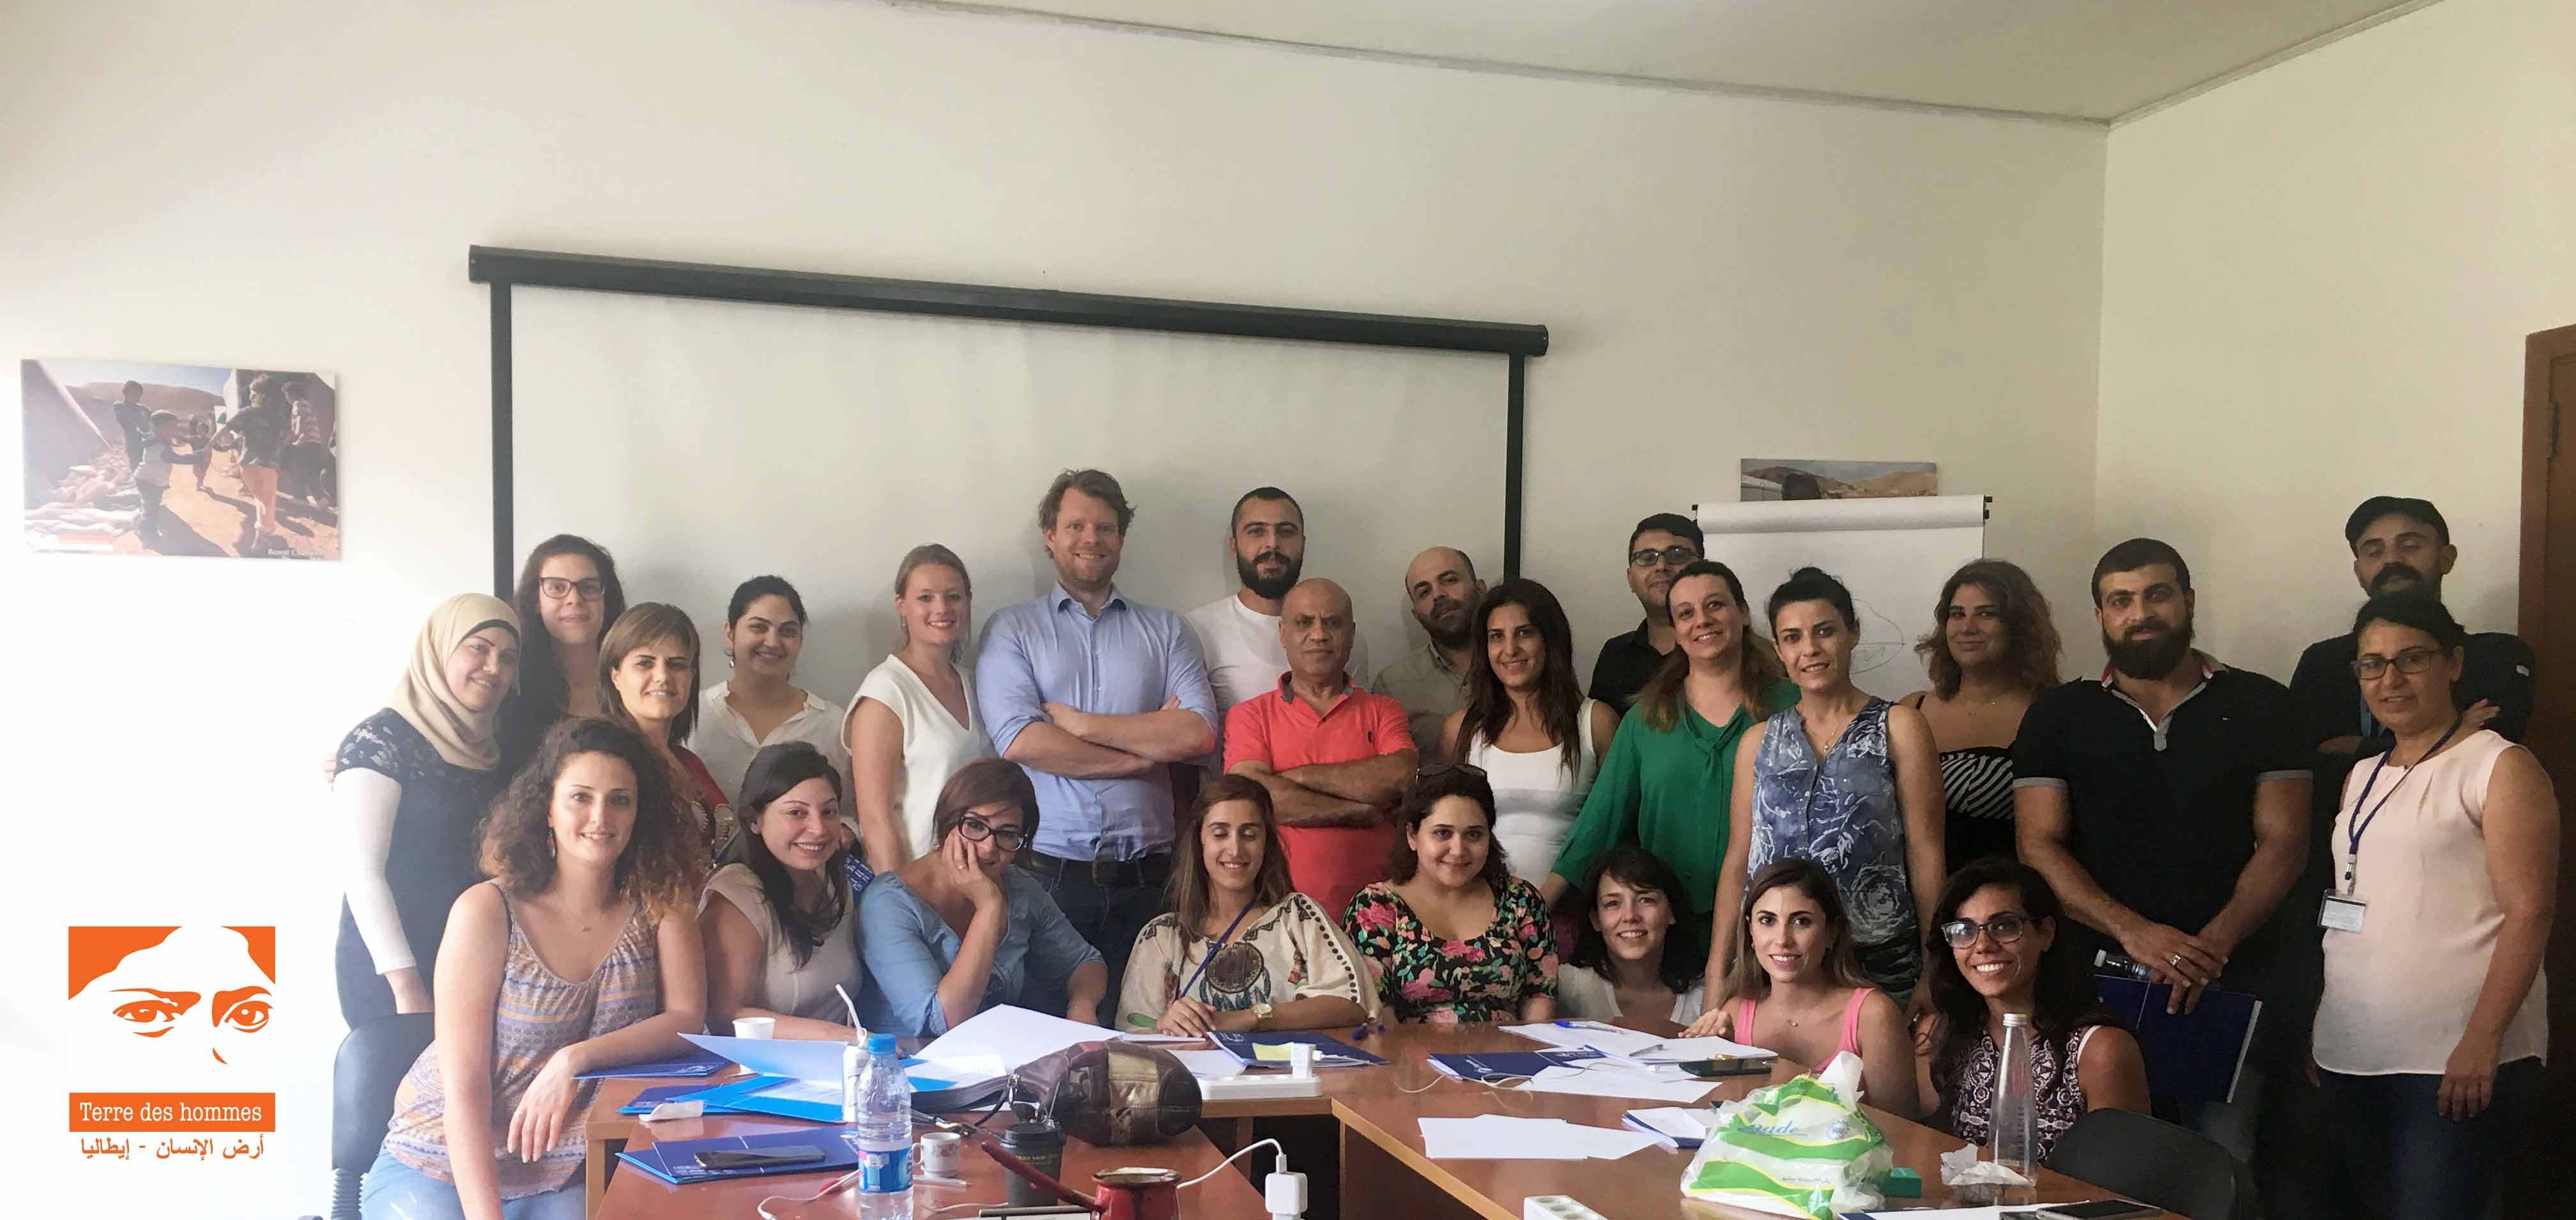 Humanitarian Negotiations Training in Beirut with Terre des Hommes and local partner Nabaa (2 August 2017).